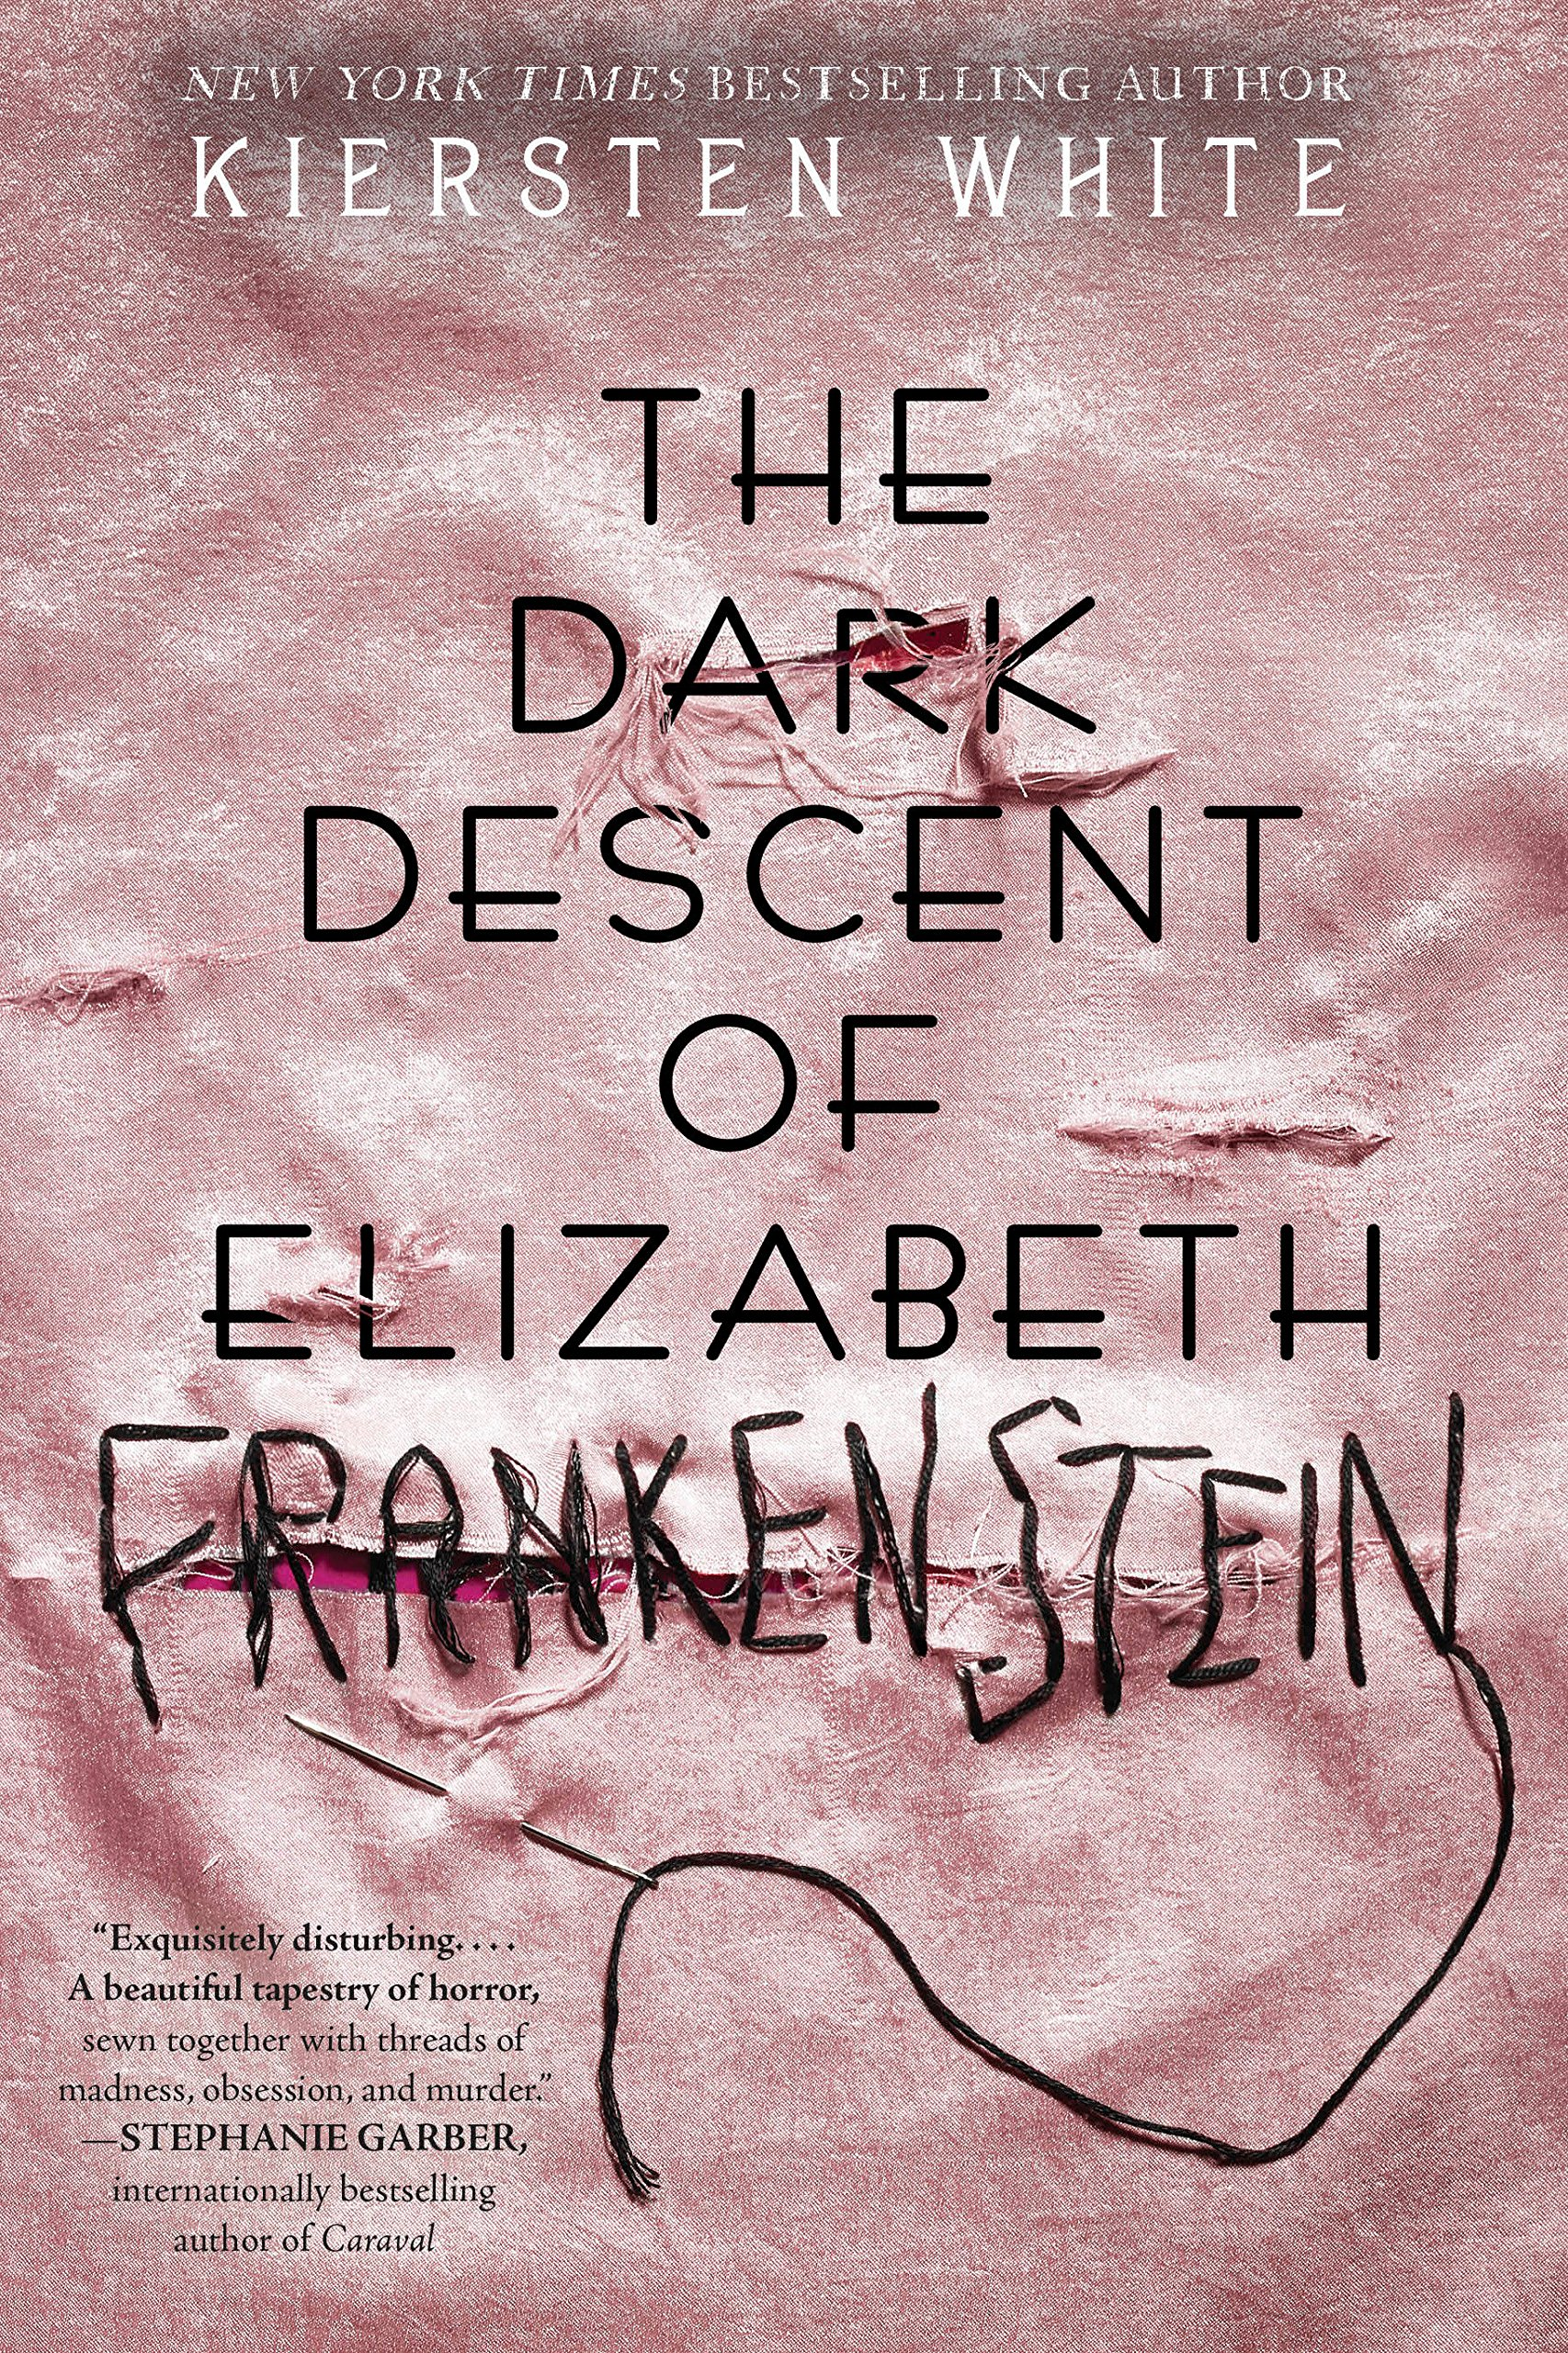 Image result for the dark descent of elizabeth frankenstein